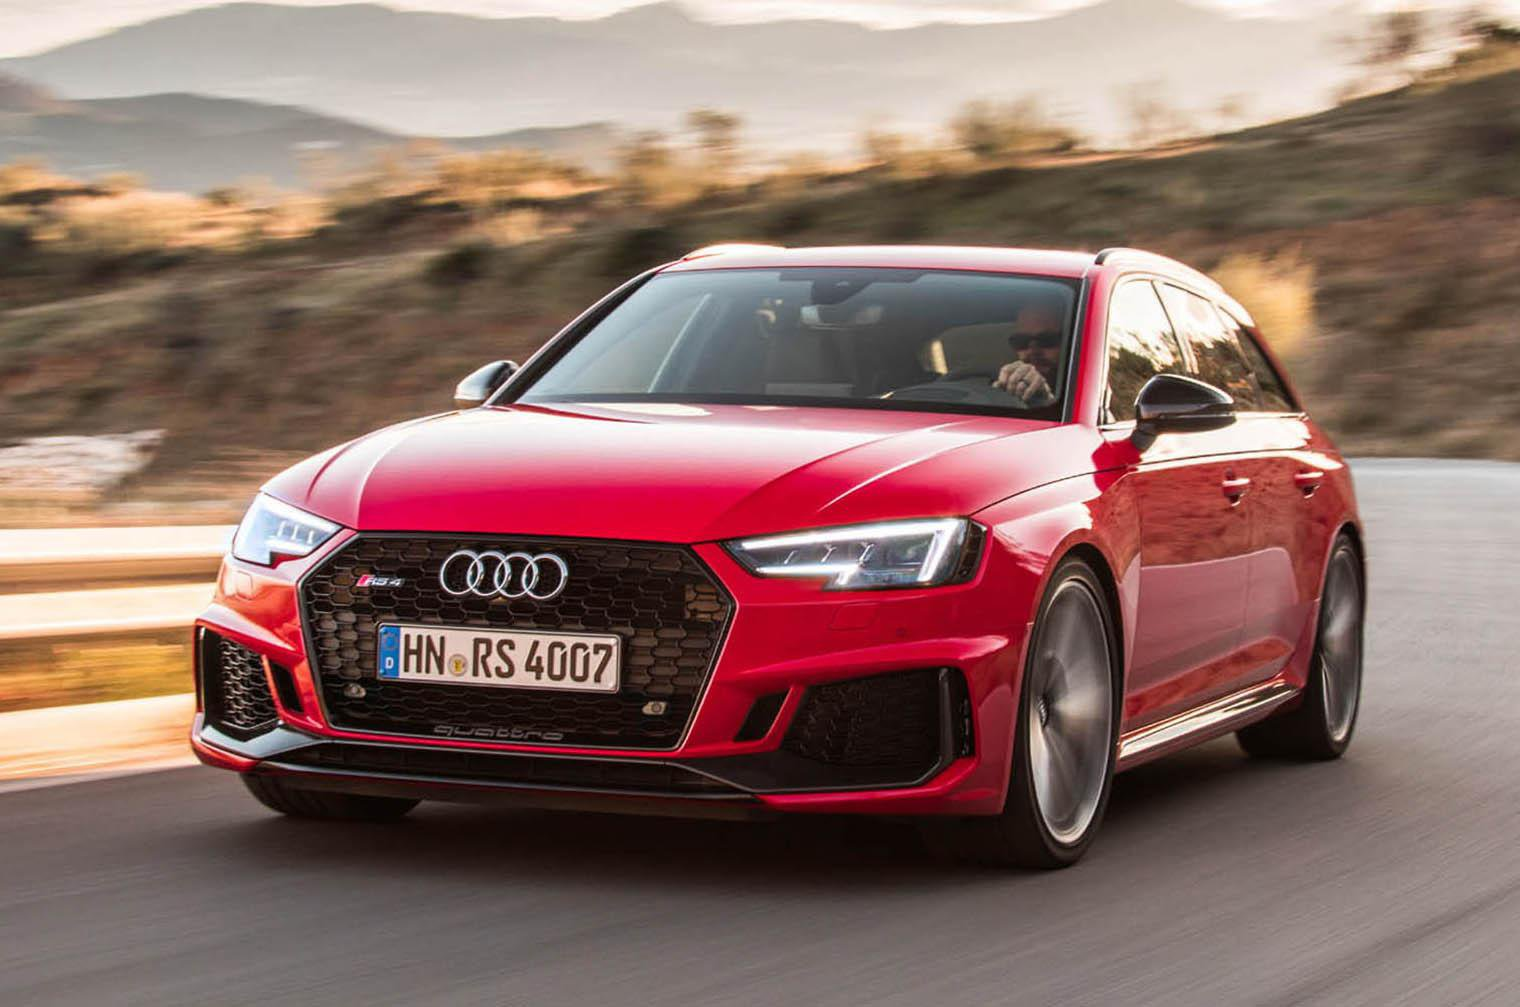 2018 Audi RS4 Avant review – prices, specs and release date